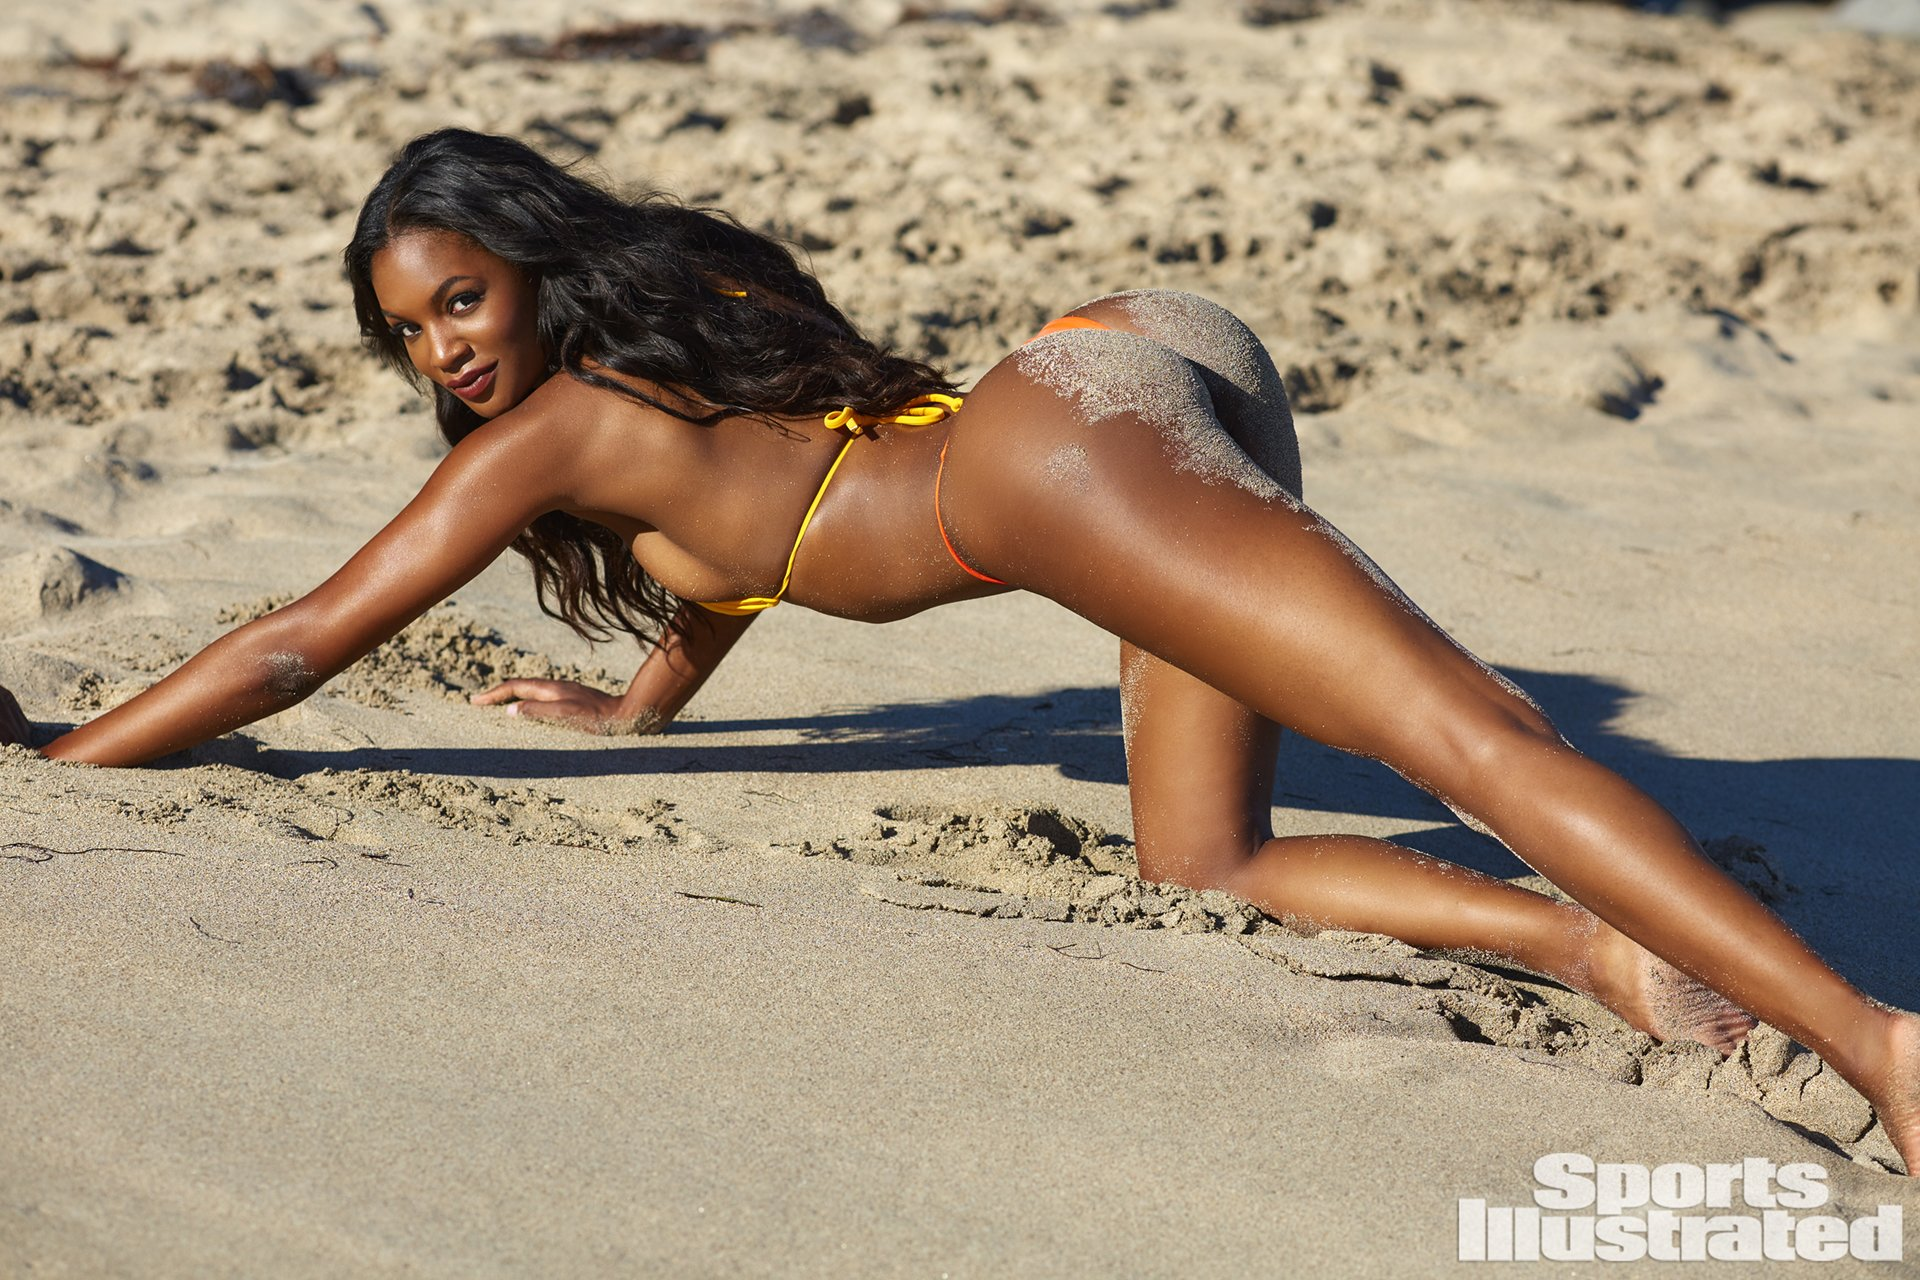 Sports Illustrated Swimsuit Issue 2018 (11).jpg